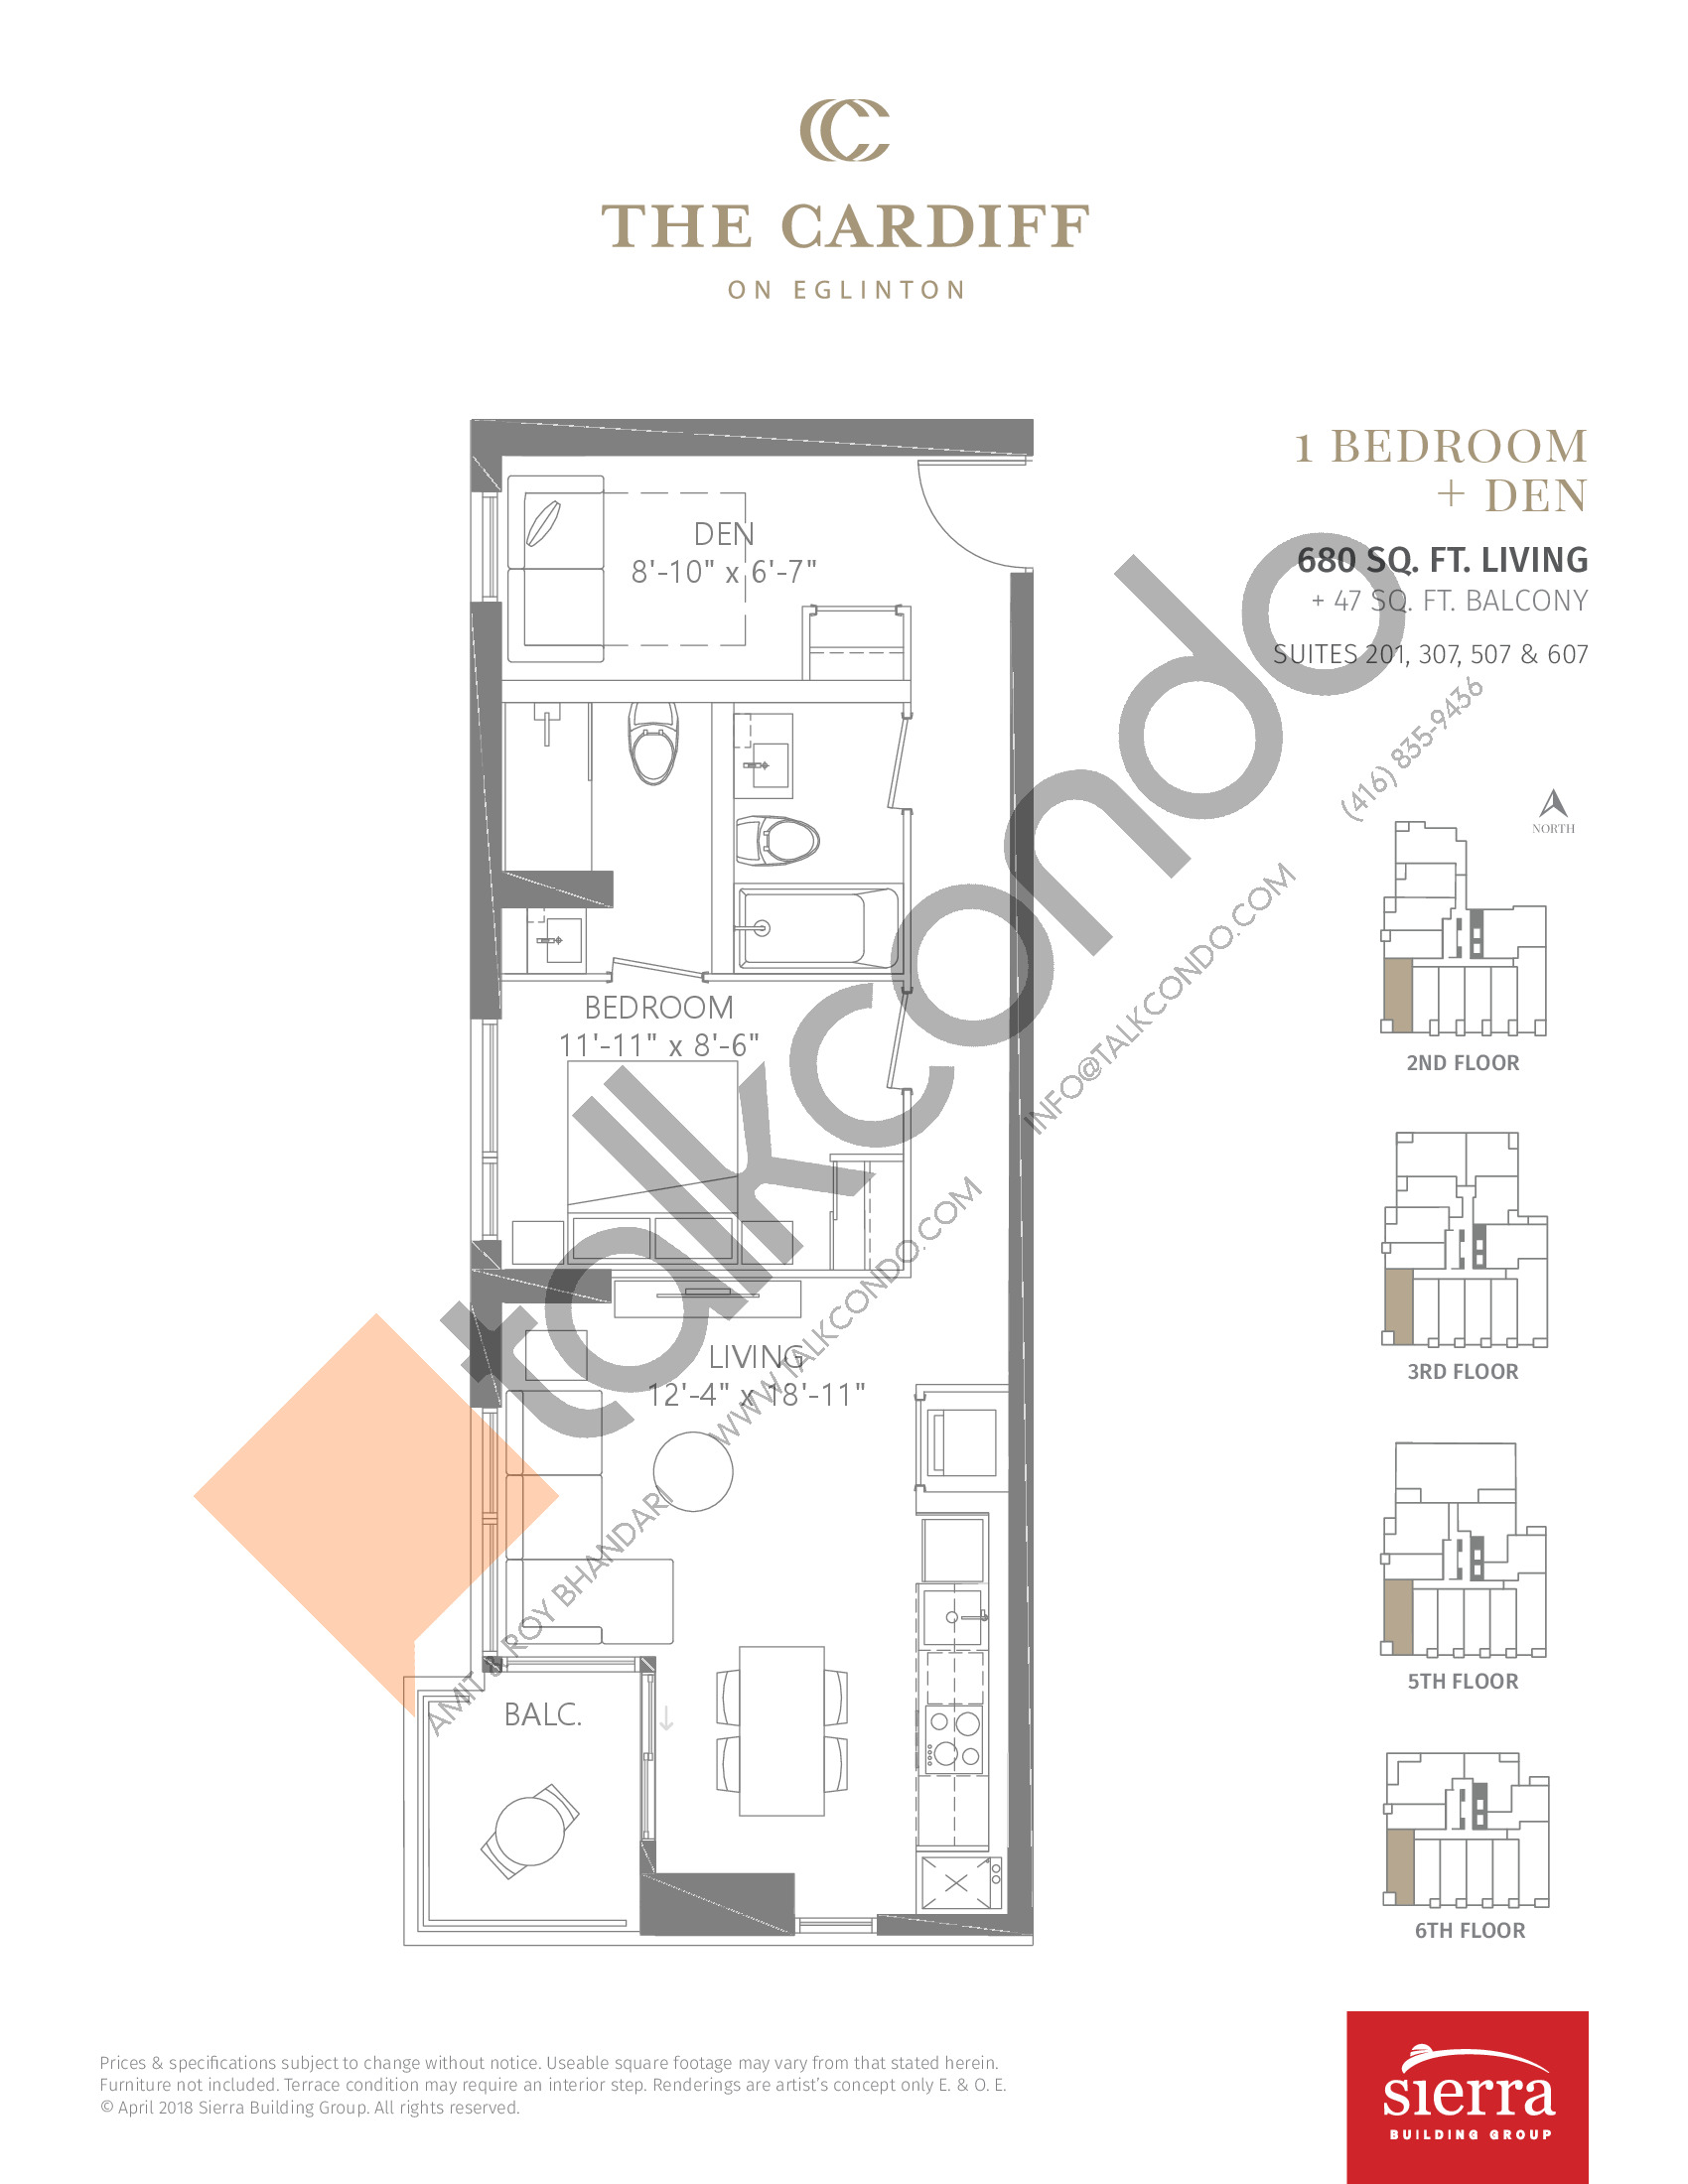 Suites 201, 307, 507 & 607 Floor Plan at The Cardiff Condos on Eglinton - 680 sq.ft